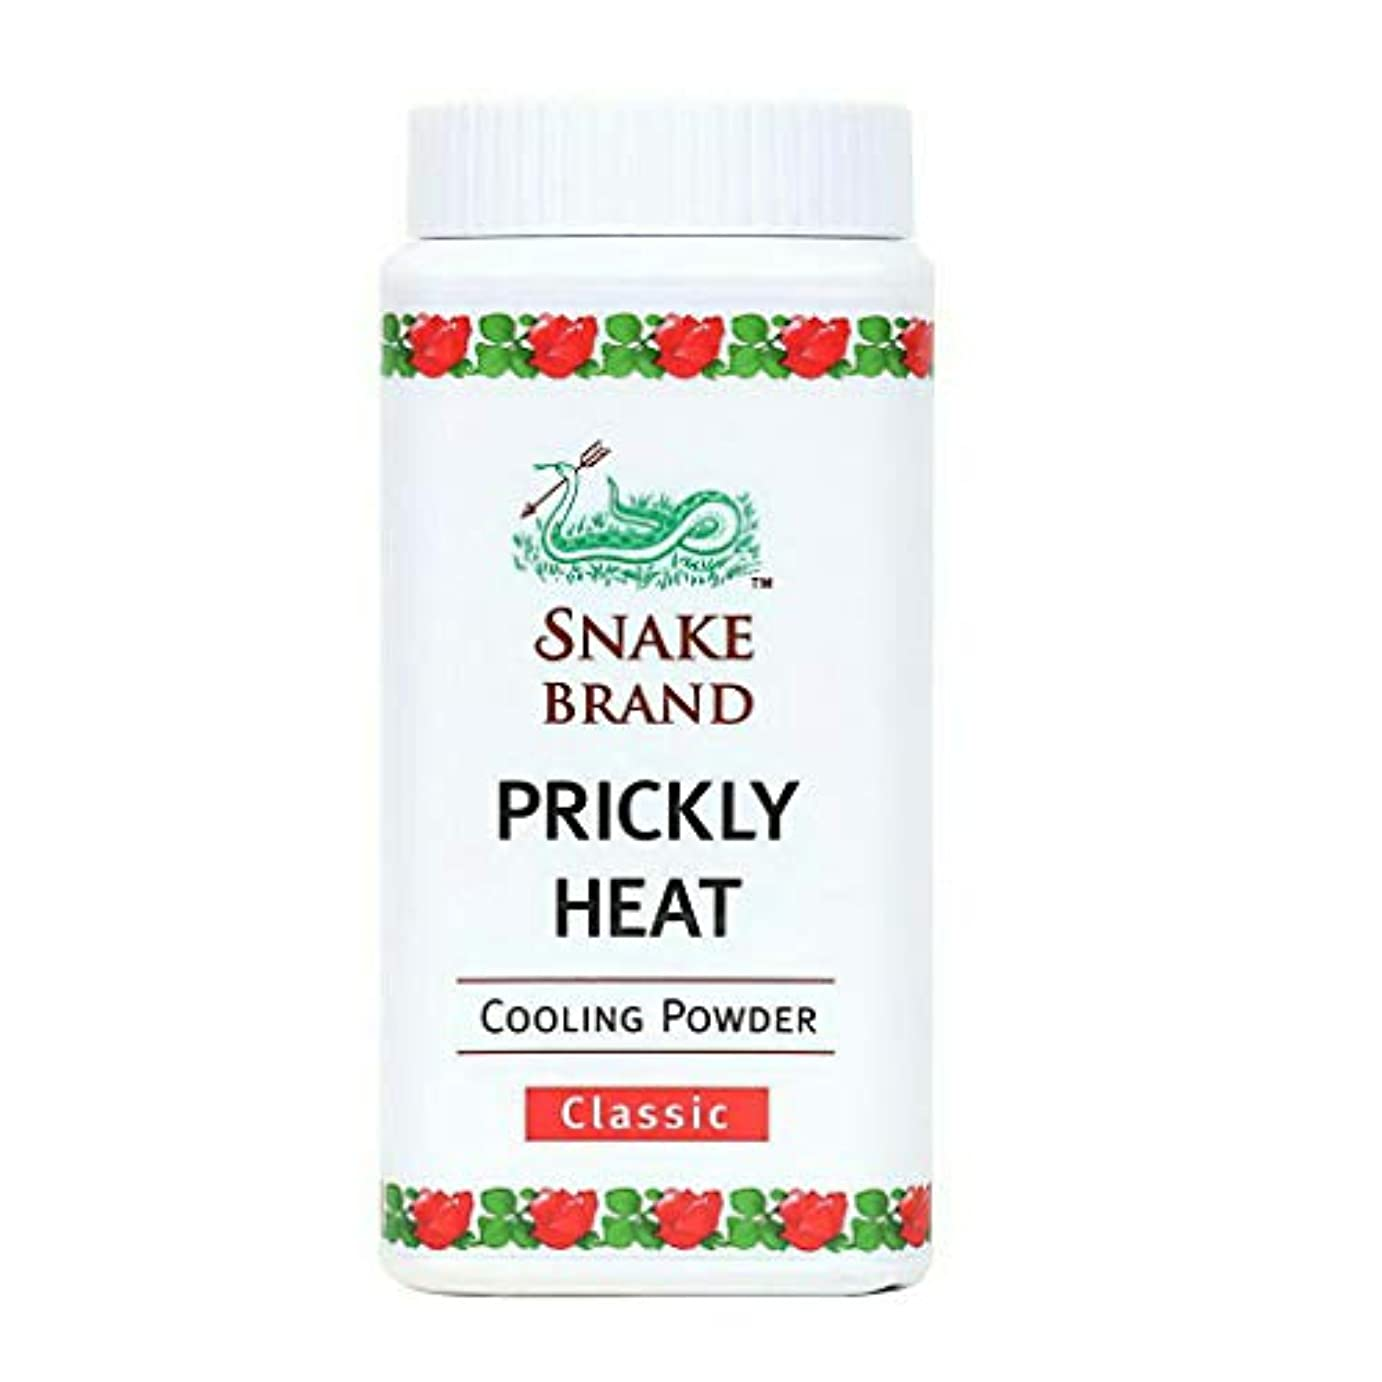 象逆さまに生産性Prickly Heat Cooling Fresh Refreshing Body Powder Skin Moisture Snake Brand Cooling Powder Classic 50g